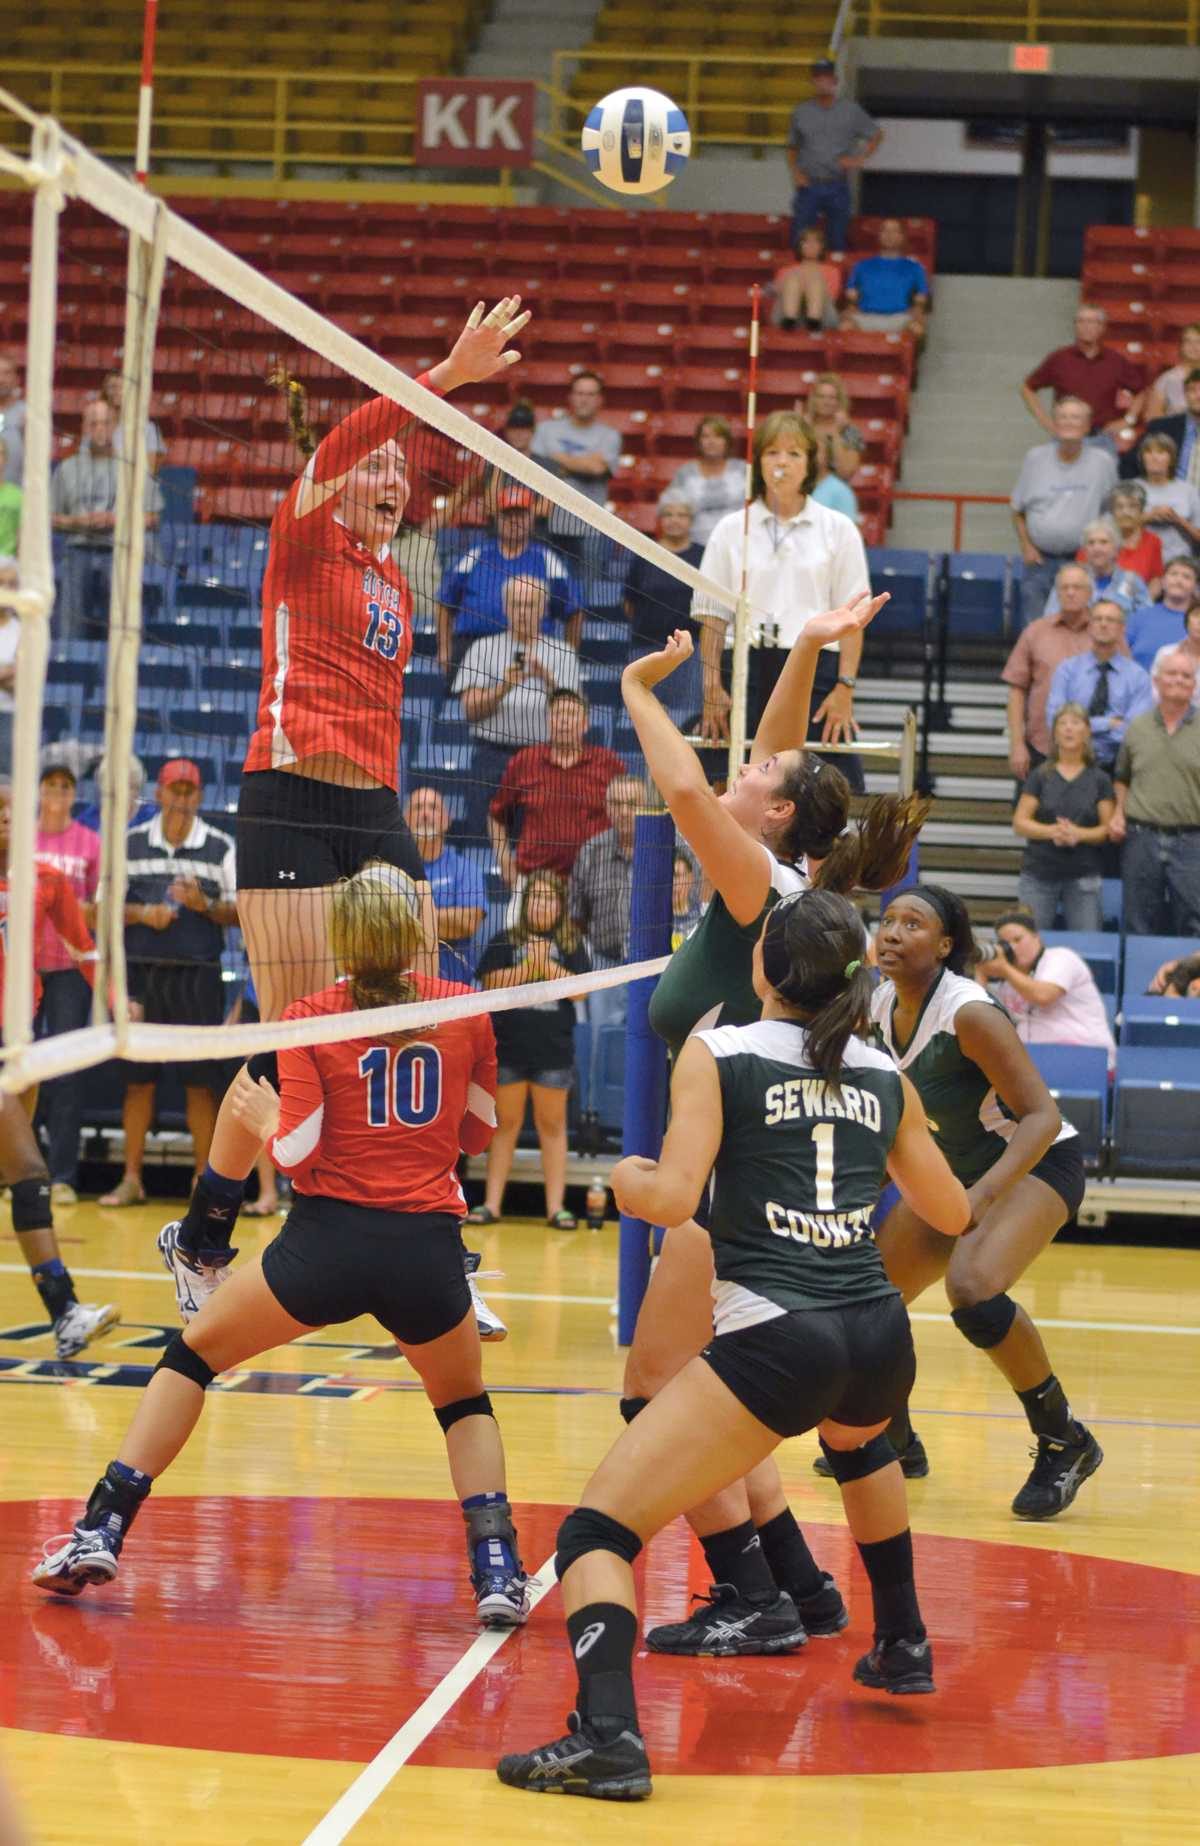 Crusader photo/Maria Lara The Lady Saints try to block a kill from the Hutchinson Blue Dragons. Seward only recorded four blocks for the game and was swept 3-1 by the Blue Dragons.